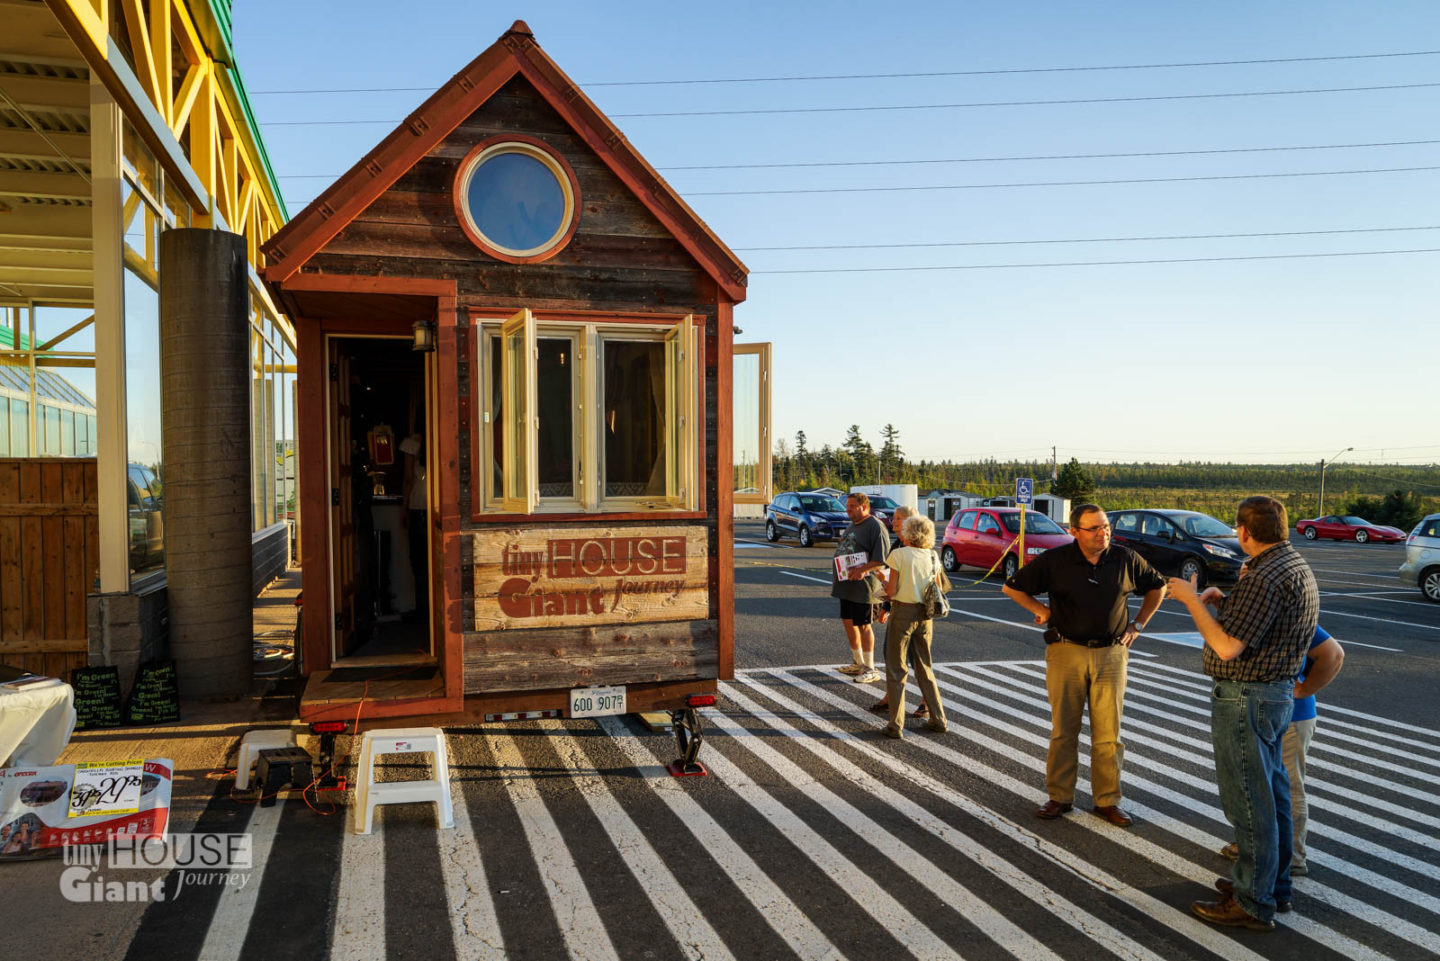 Tiny House Canada Tour FAQ